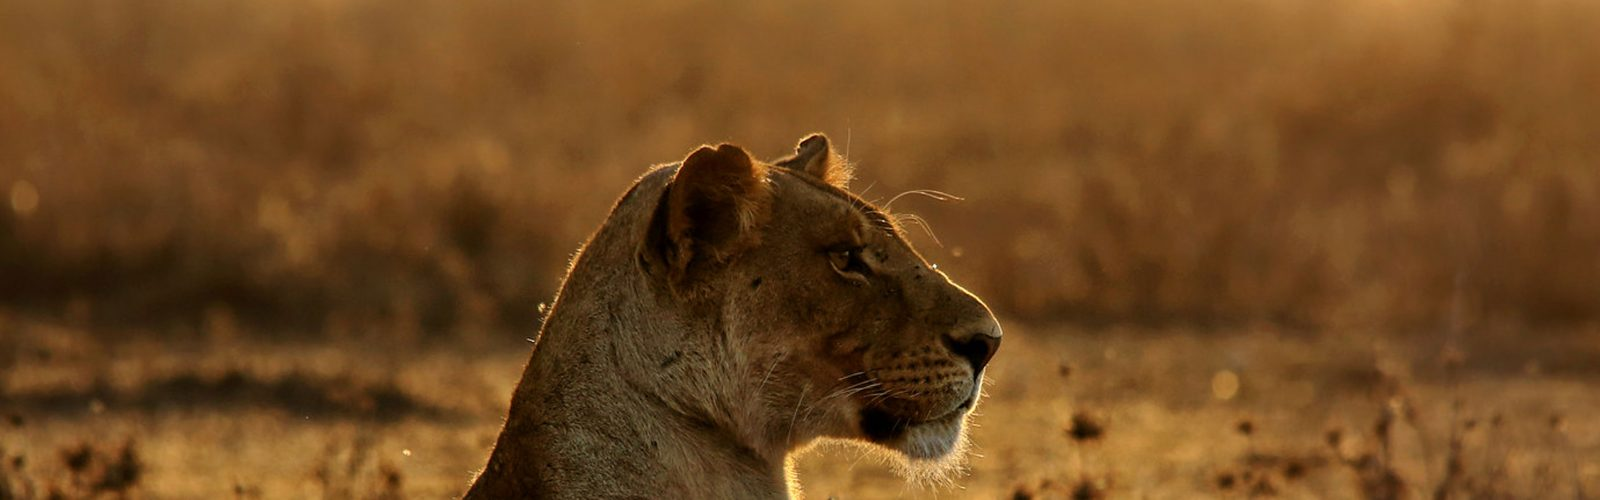 lioness photographed by surya ramachandran